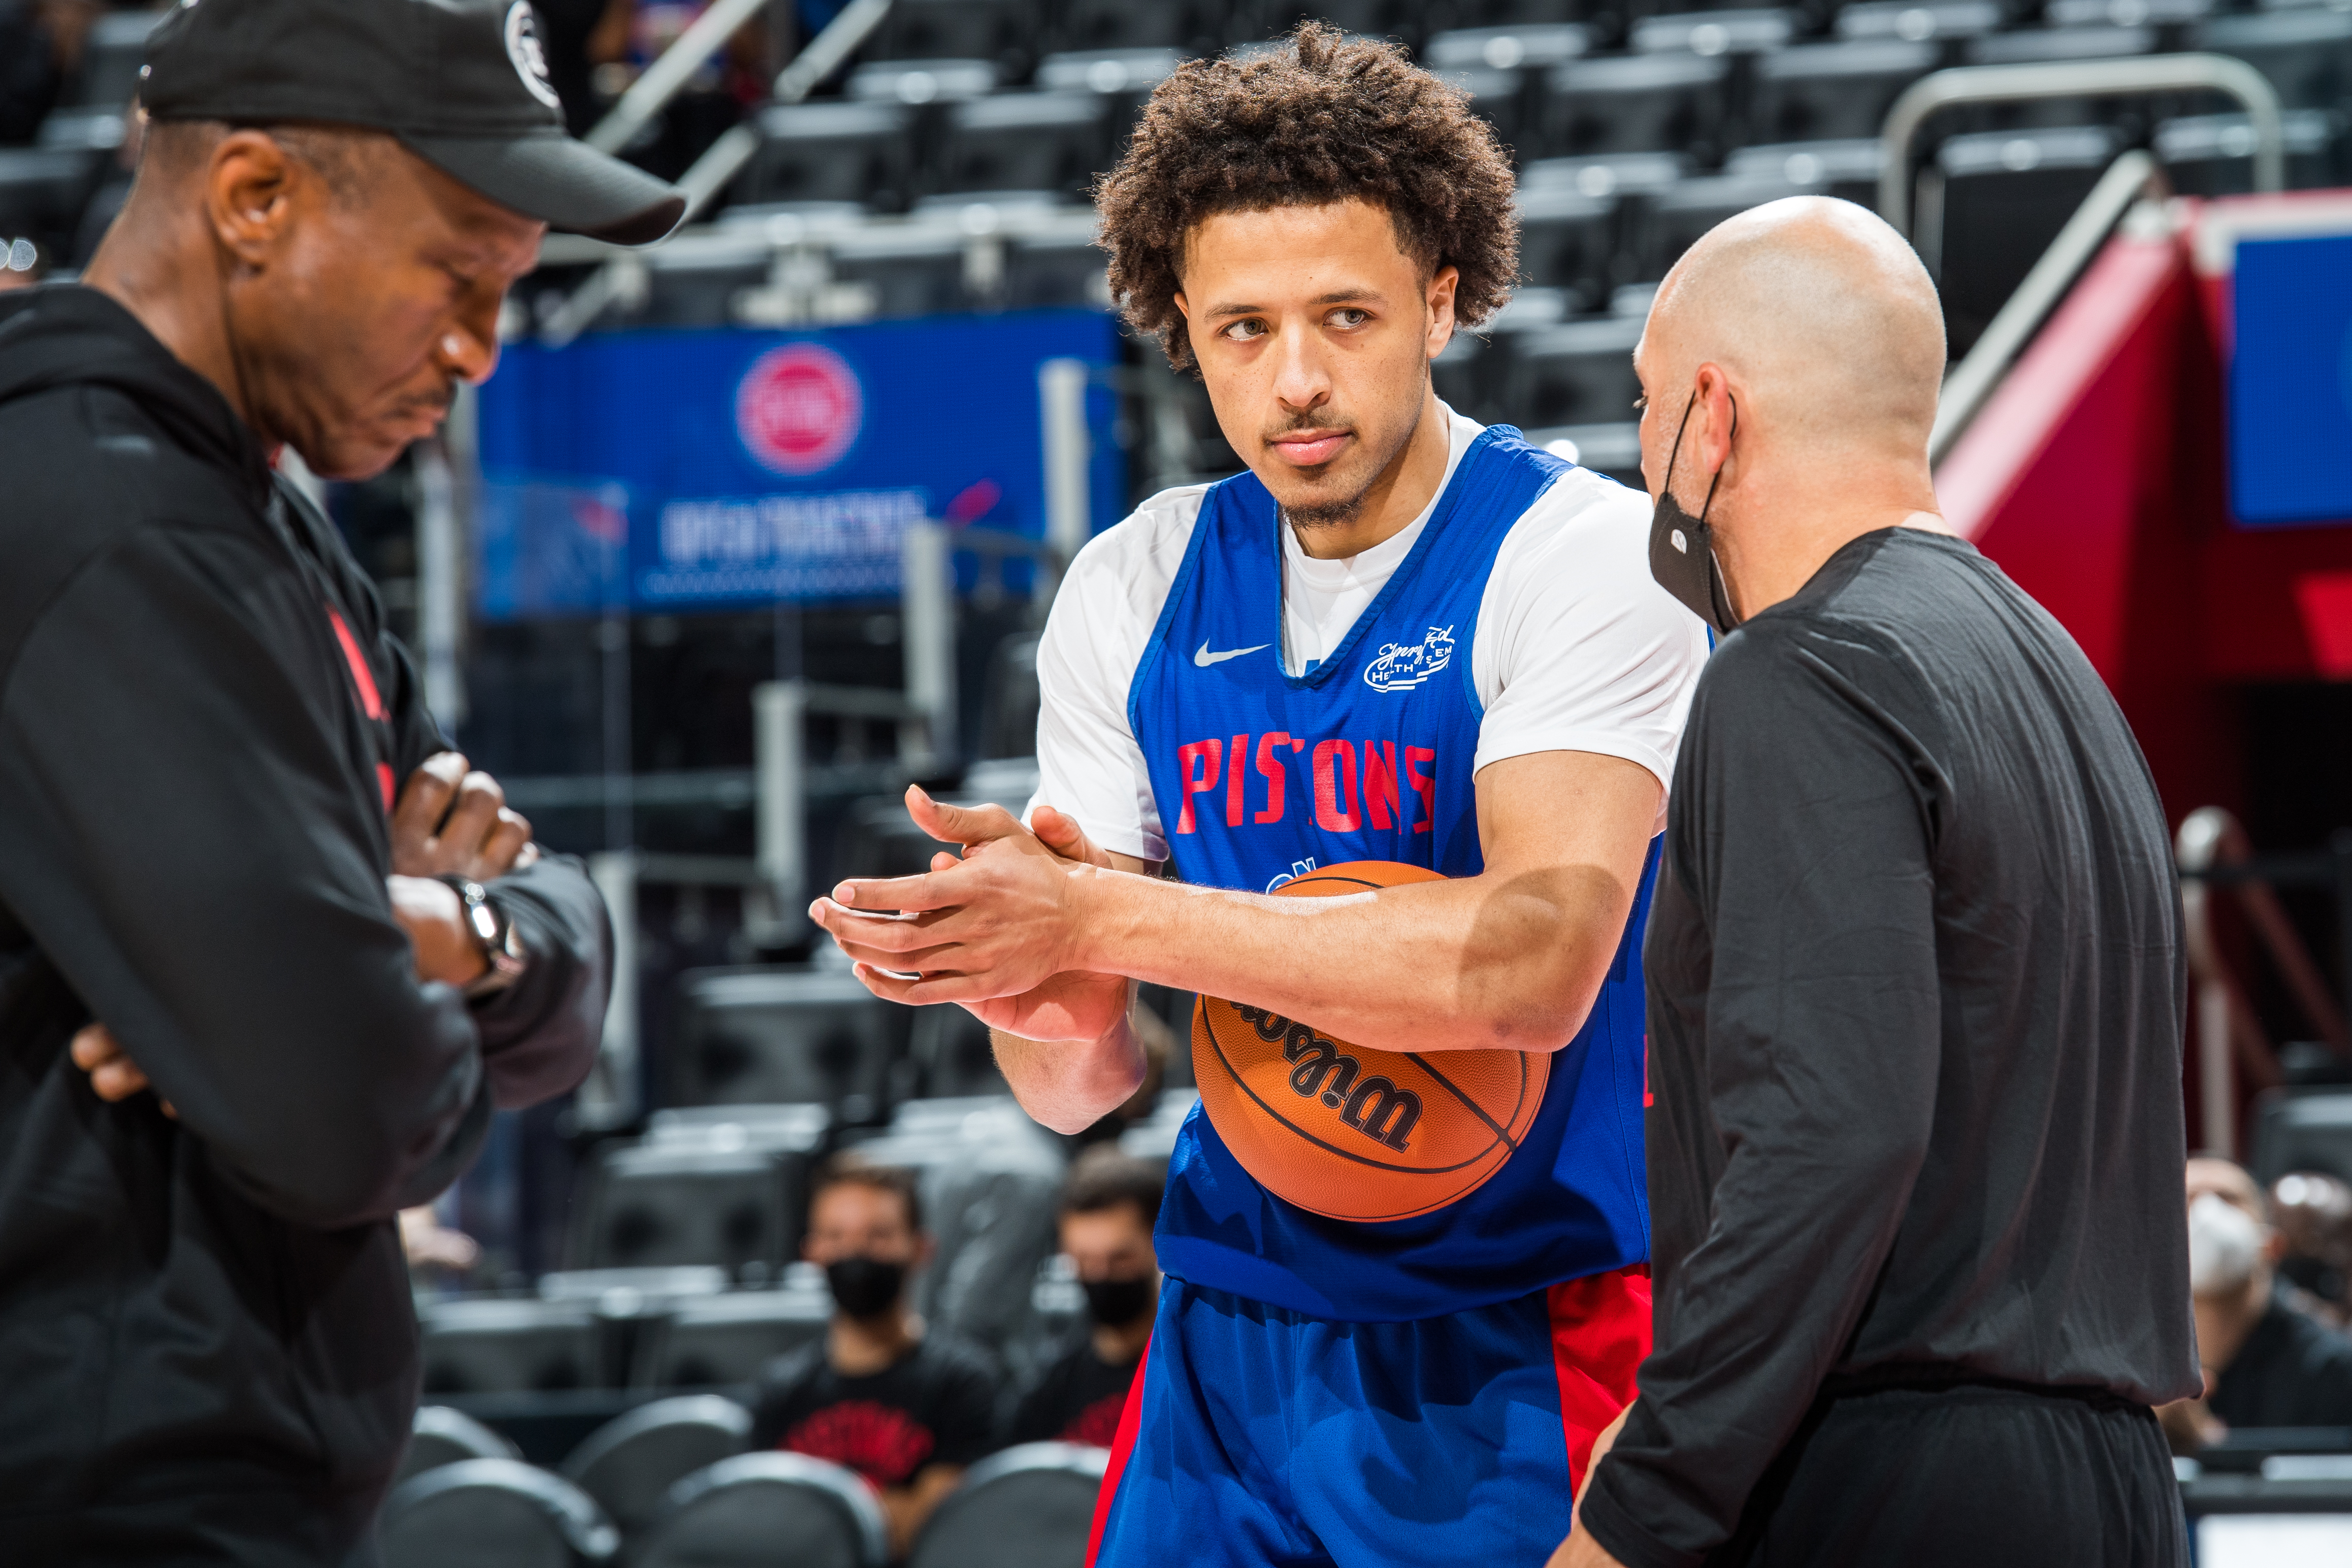 Cade Cunningham #2 of the Detroit Pistons talks to his coaches during open practice at the Little Caesars Arena on October 9, 2021 in Detroit, Michigan.